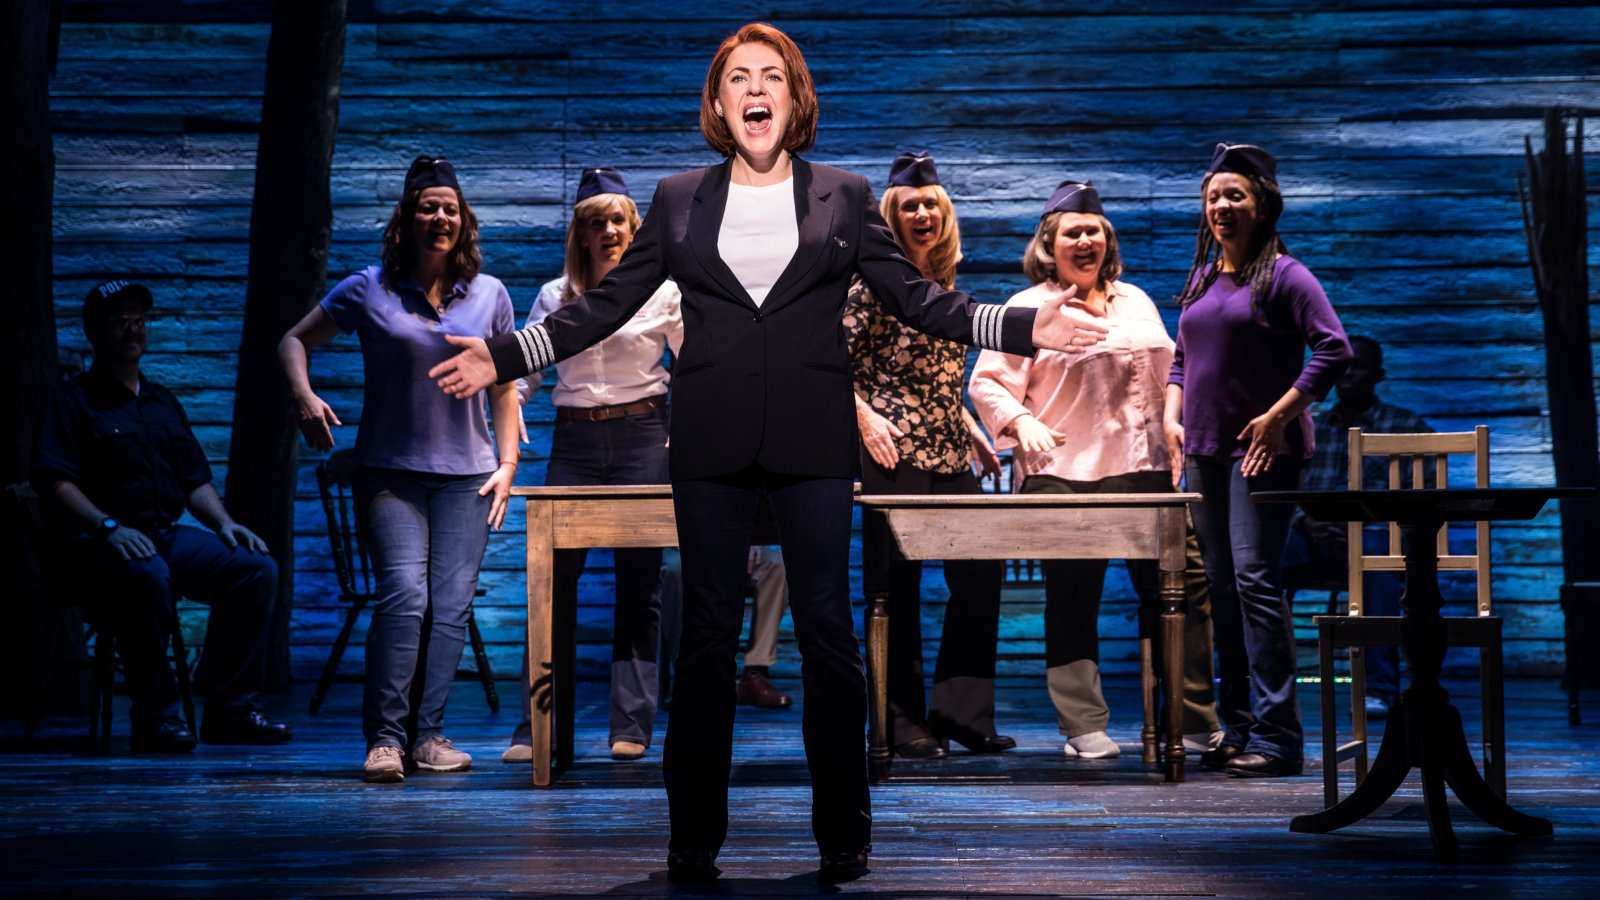 Come From Away is a heartwarming musical about community and tolerance not to be missed when you're in London